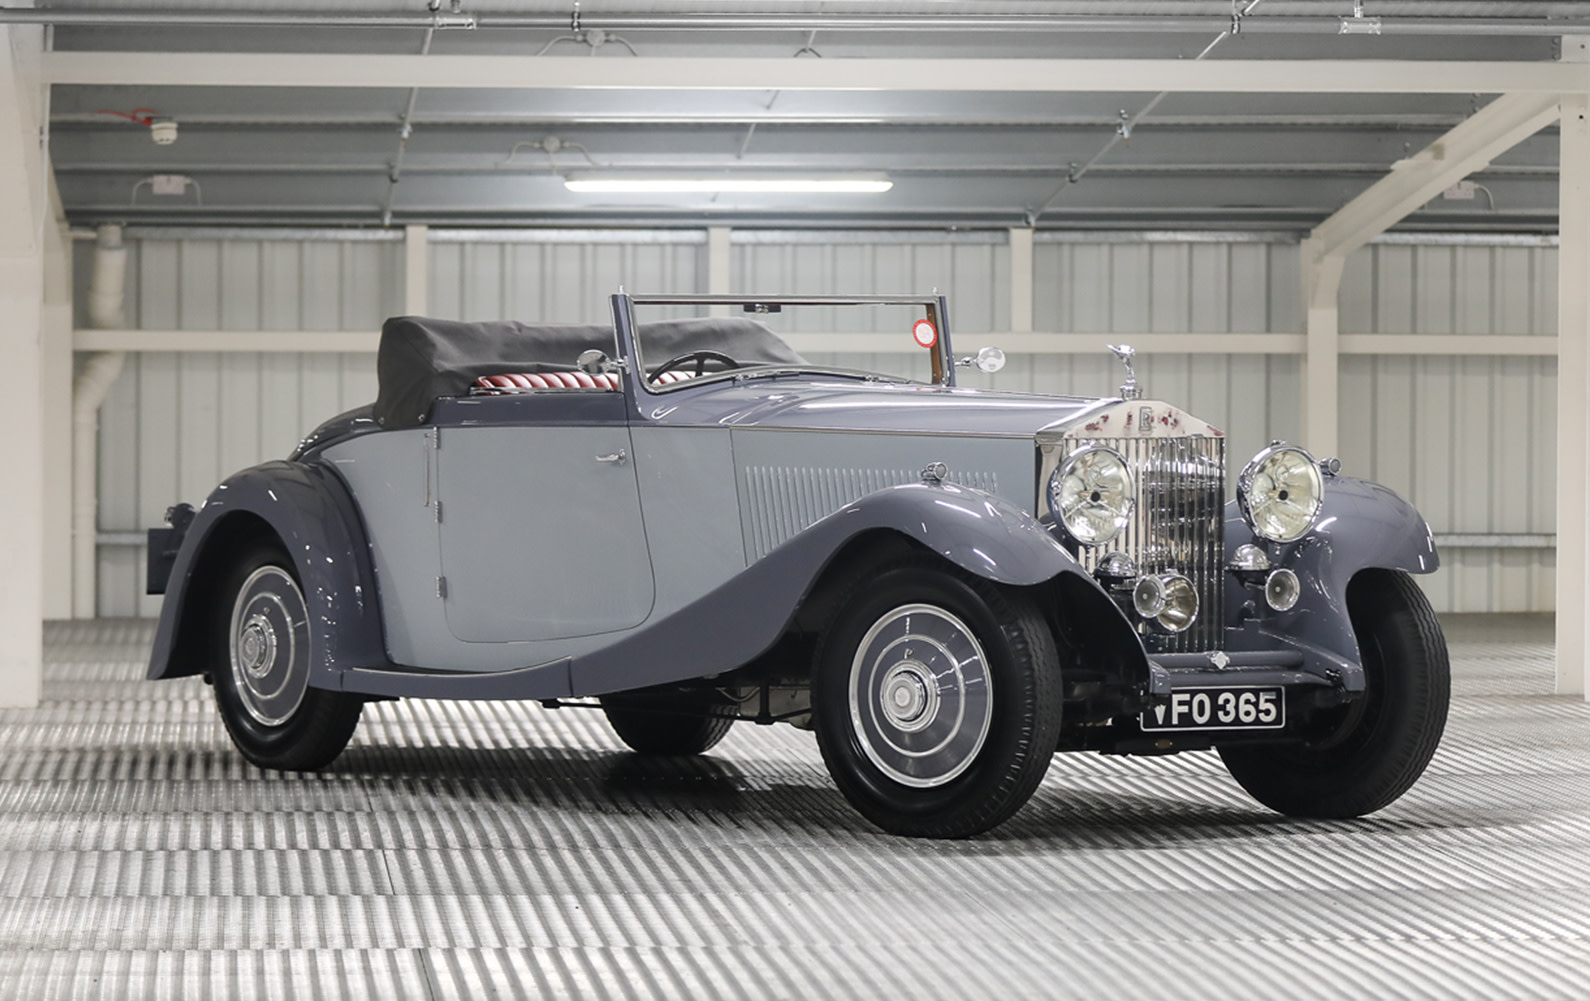 Prod/O21B - UK 2021/1934 Rolls-Royce Phantom II Continental Drophead Coupe/Hero/1934_Rolls_Royce_Phantom_II_Continental_Drophead_Coupe_3_myxd9j